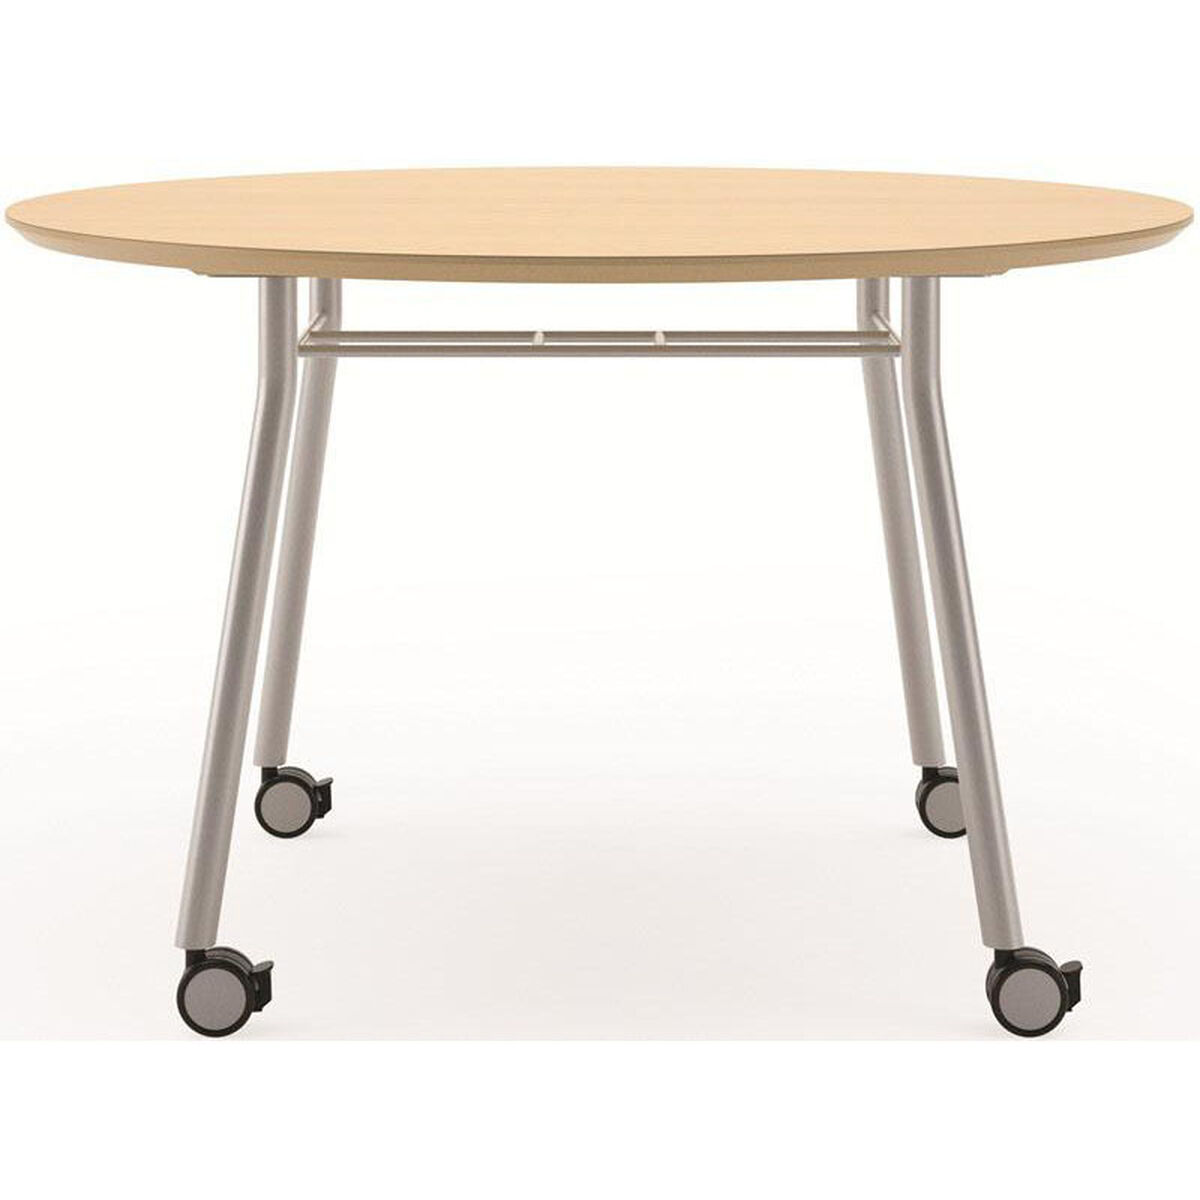 Round Conference Table Mobile MTQ Bizchaircom - 36 round conference table